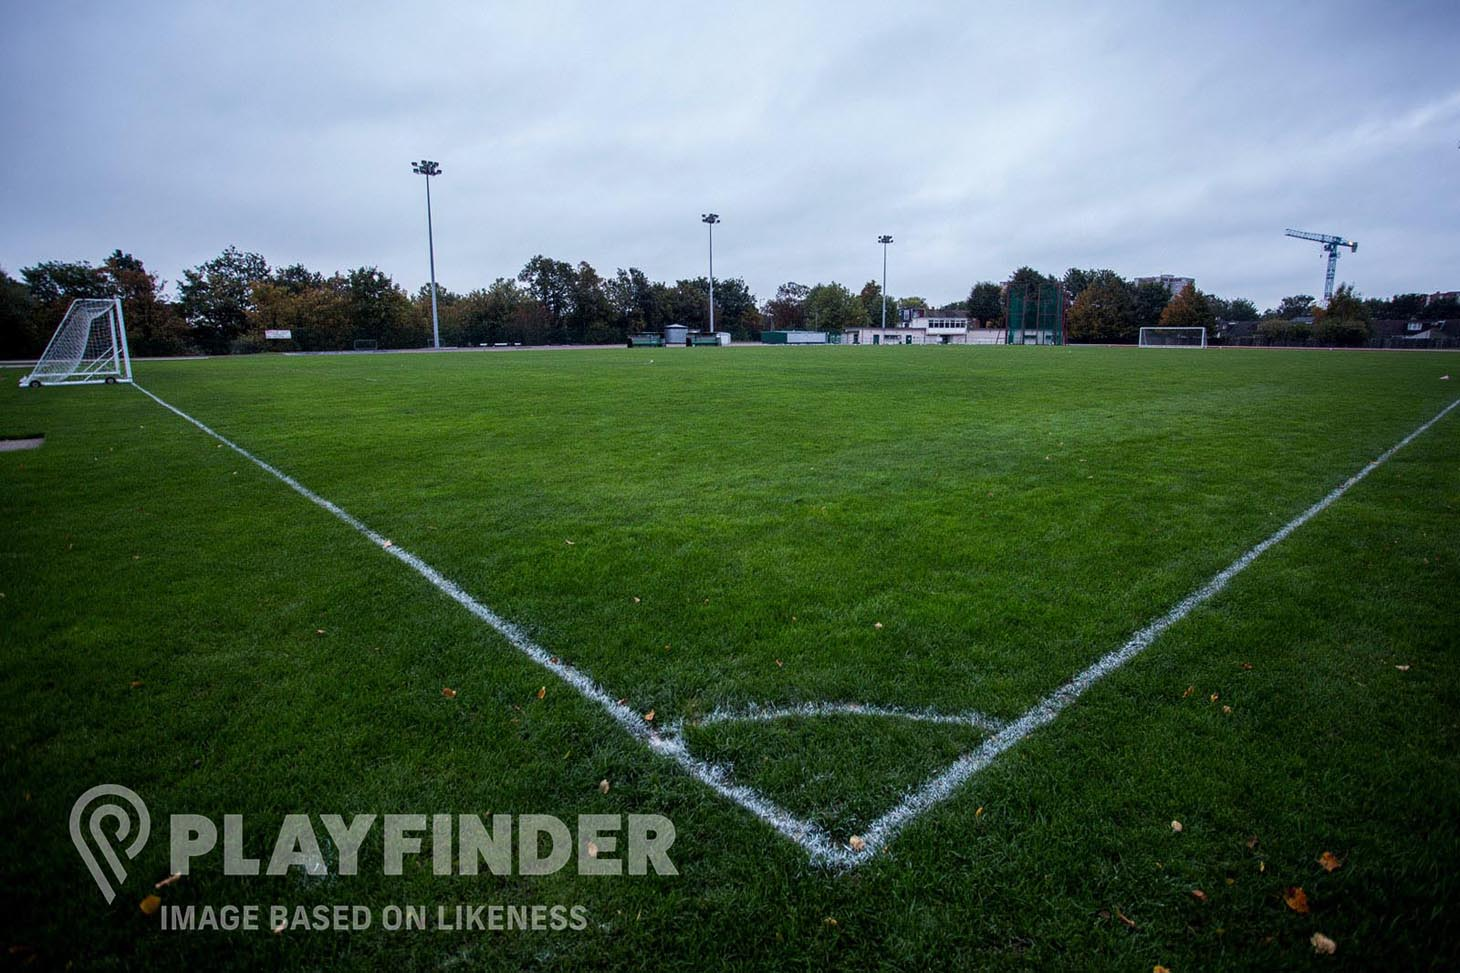 Harrogate Road Playing Fields 11 a side | Grass football pitch